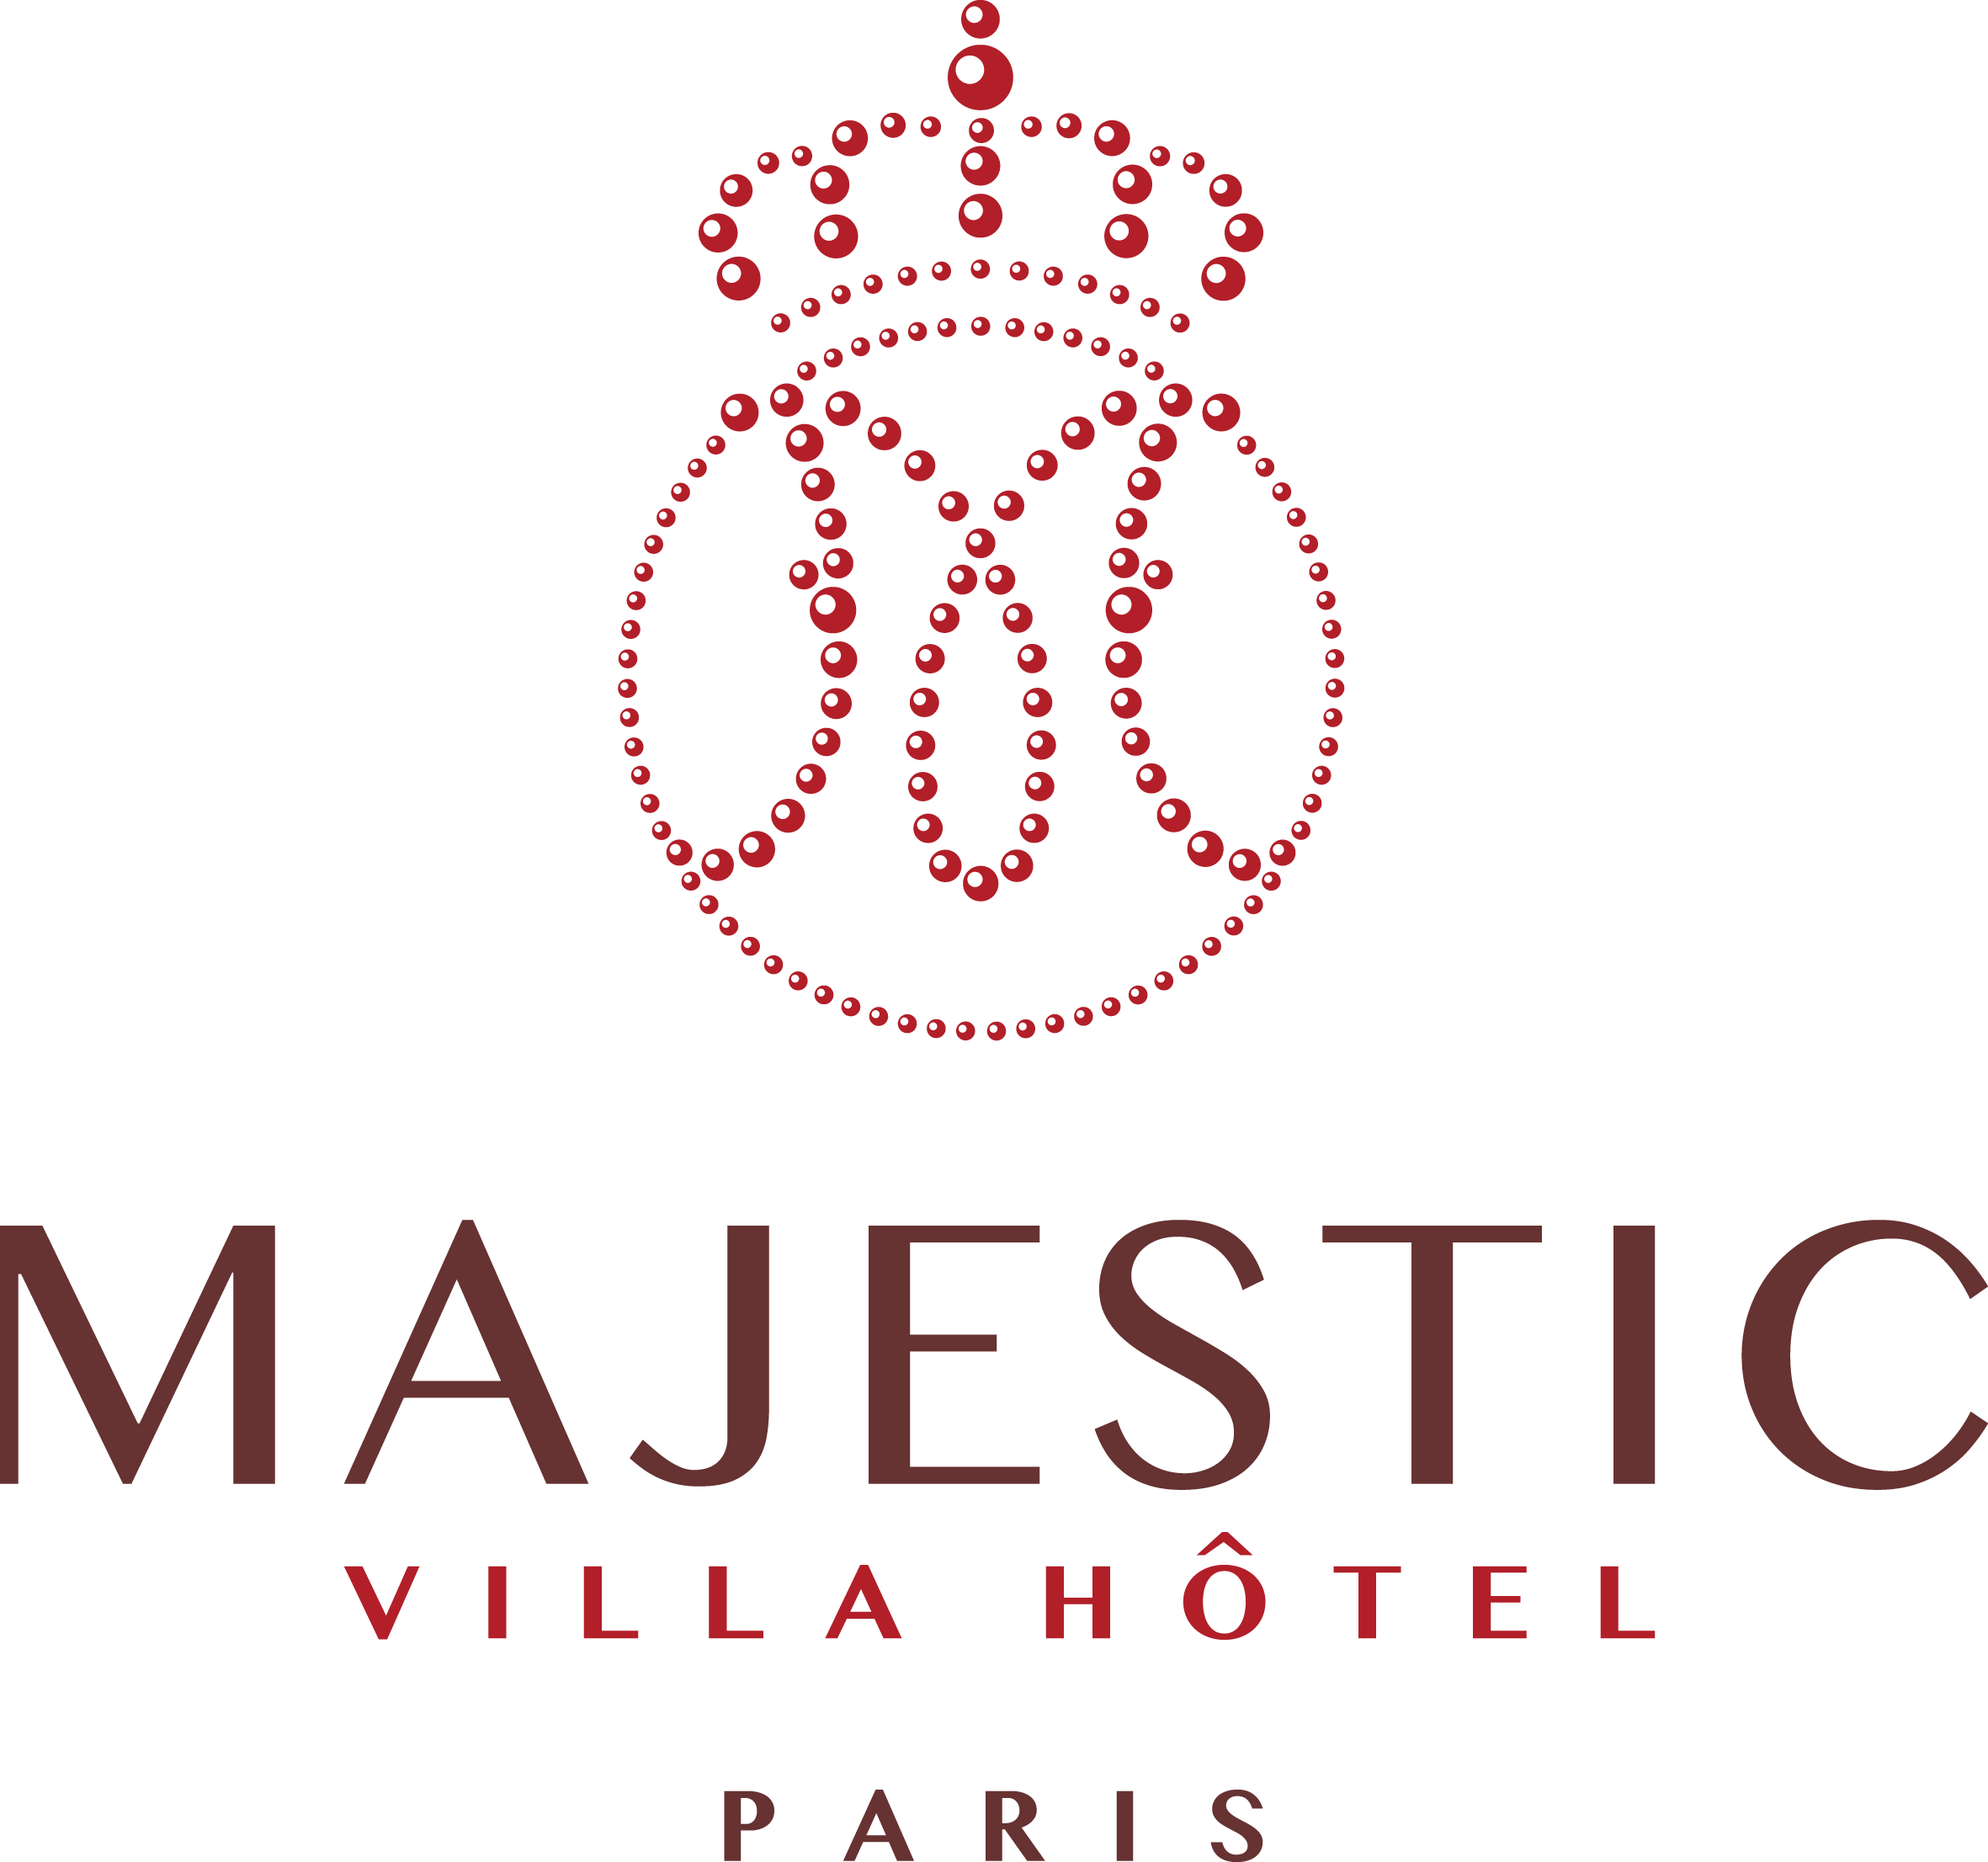 villa hotel majestic, holiday inn png logo #6567